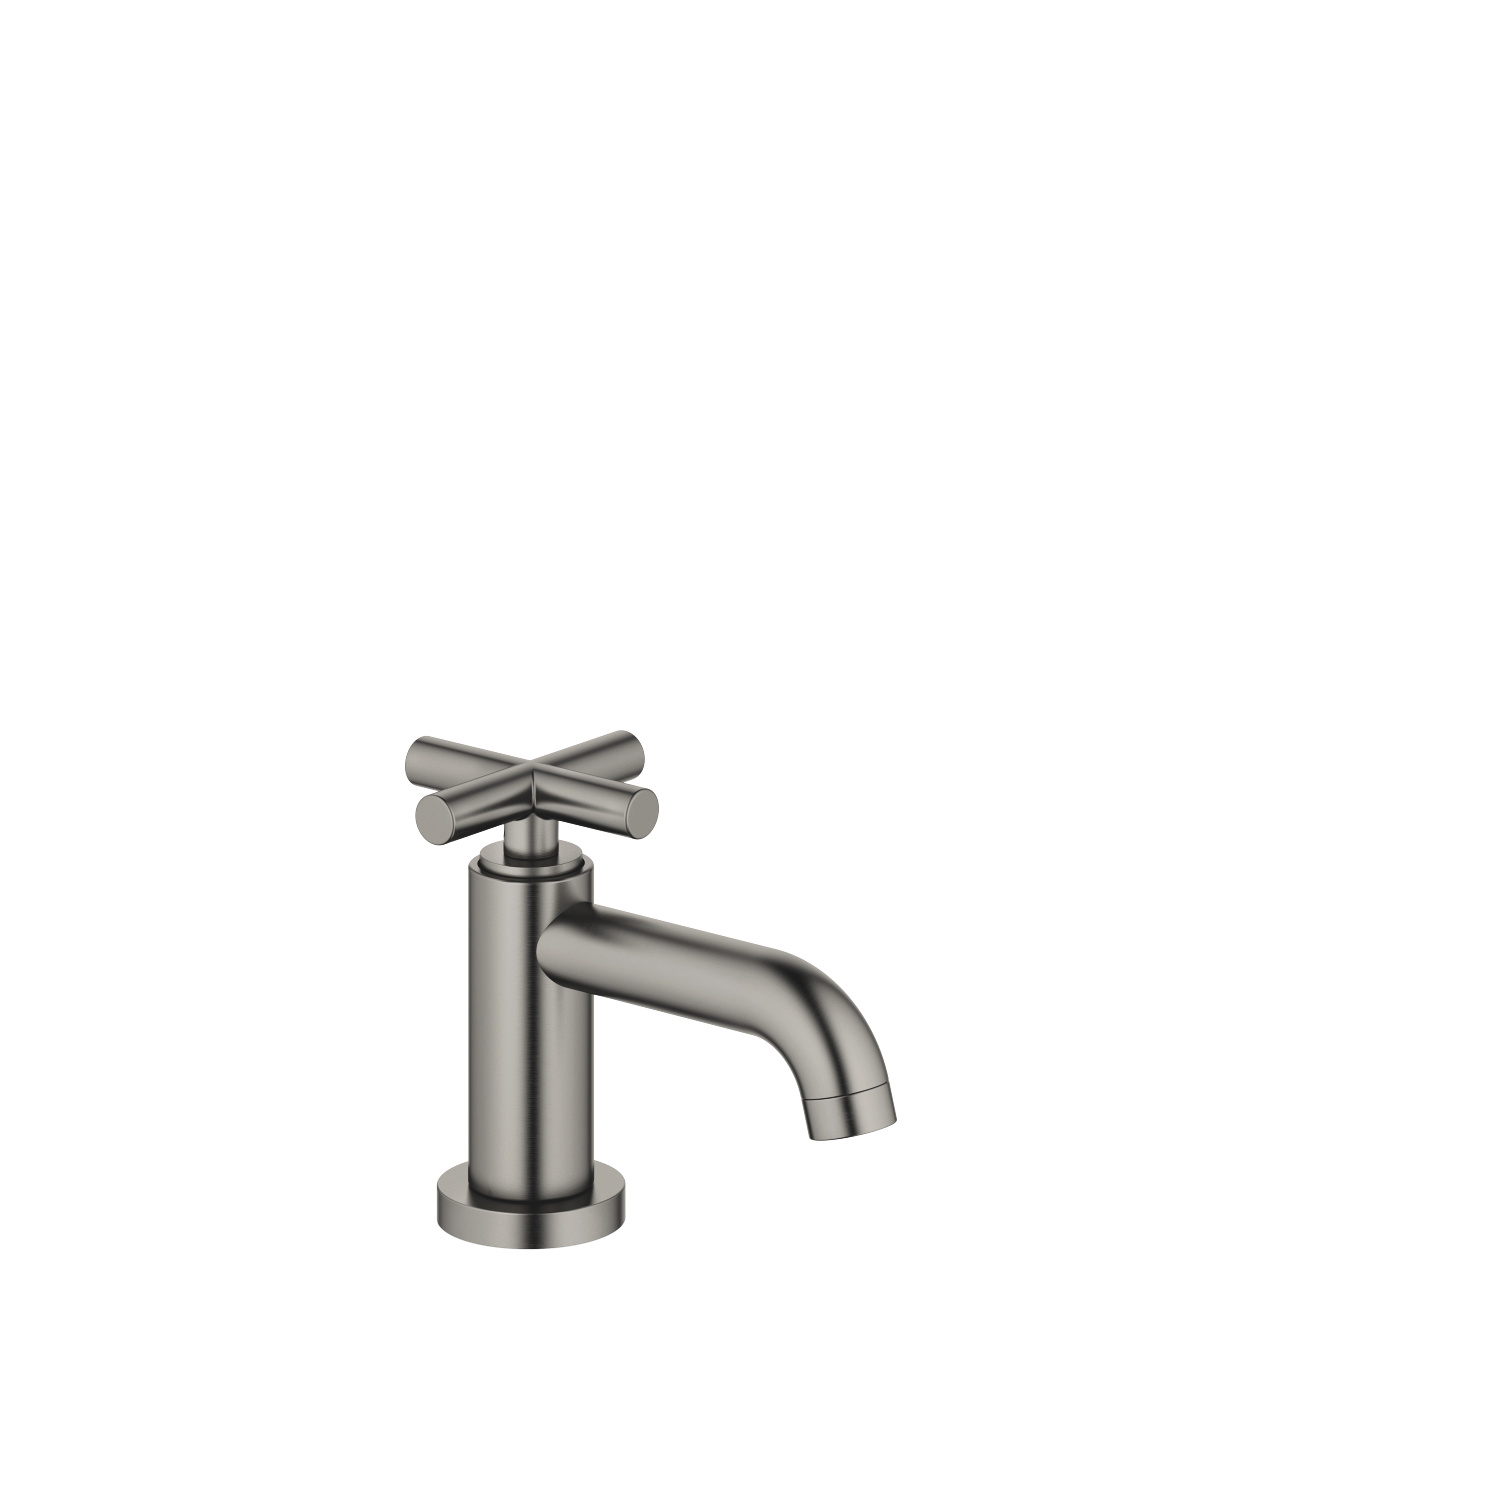 Pillar tap cold water - Dark Platinum matt